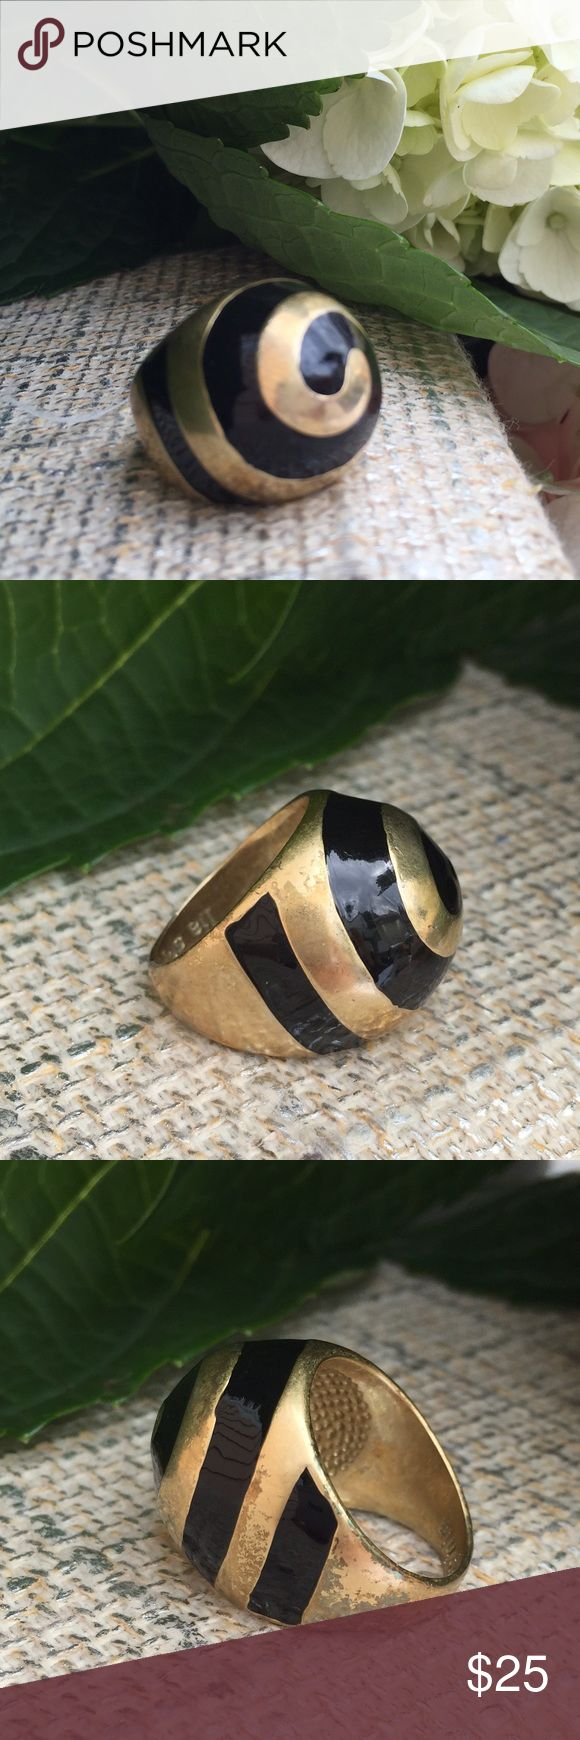 LIA SOPHIA WHIRLPOOL Ring LIA SOPHIA  from Collection, WHIRLPOOL Ring.  Matte Gold with swirls of black enamel Size: 7 H O S T  P I C K!  BeSt In JeWeLrY & AcCeSsOrIeS 07/28/2016 Lia Sophia Jewelry Rings